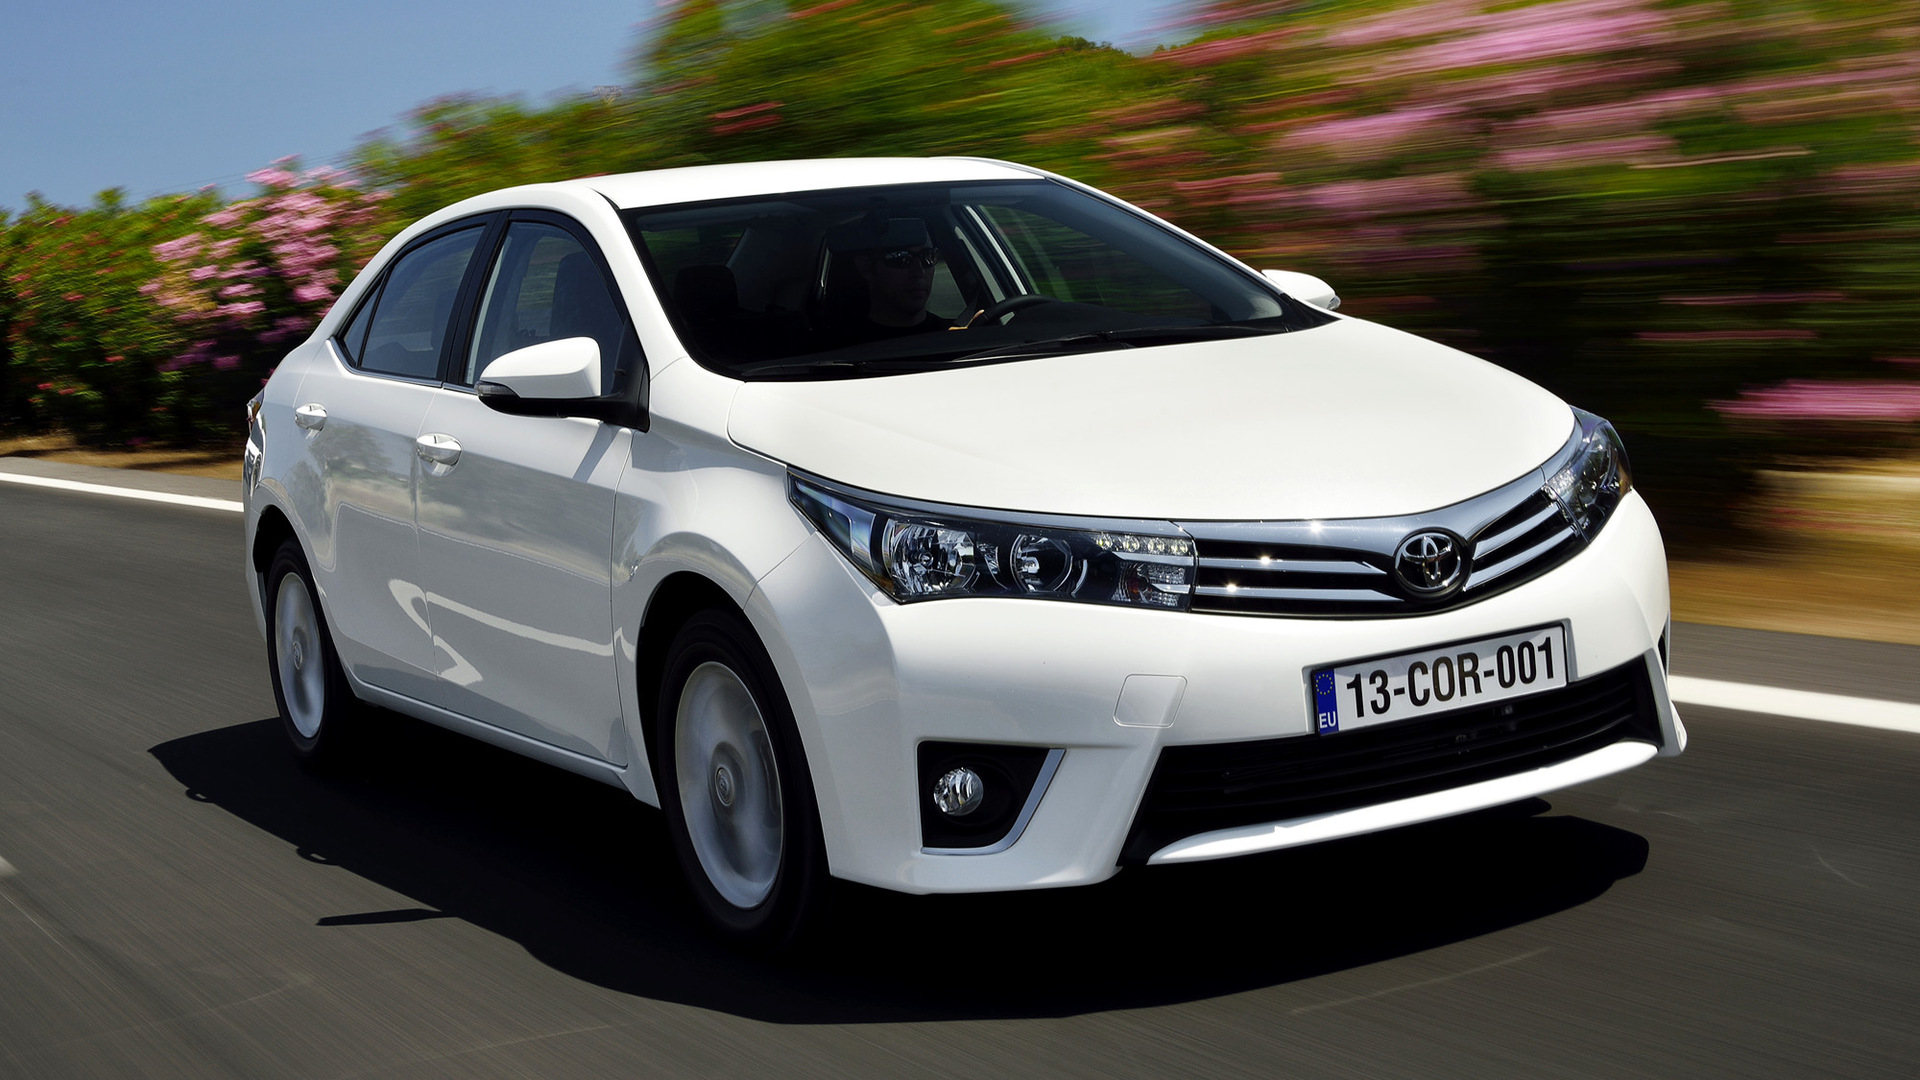 Toyota corolla 2013 eu wallpapers and hd images car pixel hd 169 voltagebd Gallery